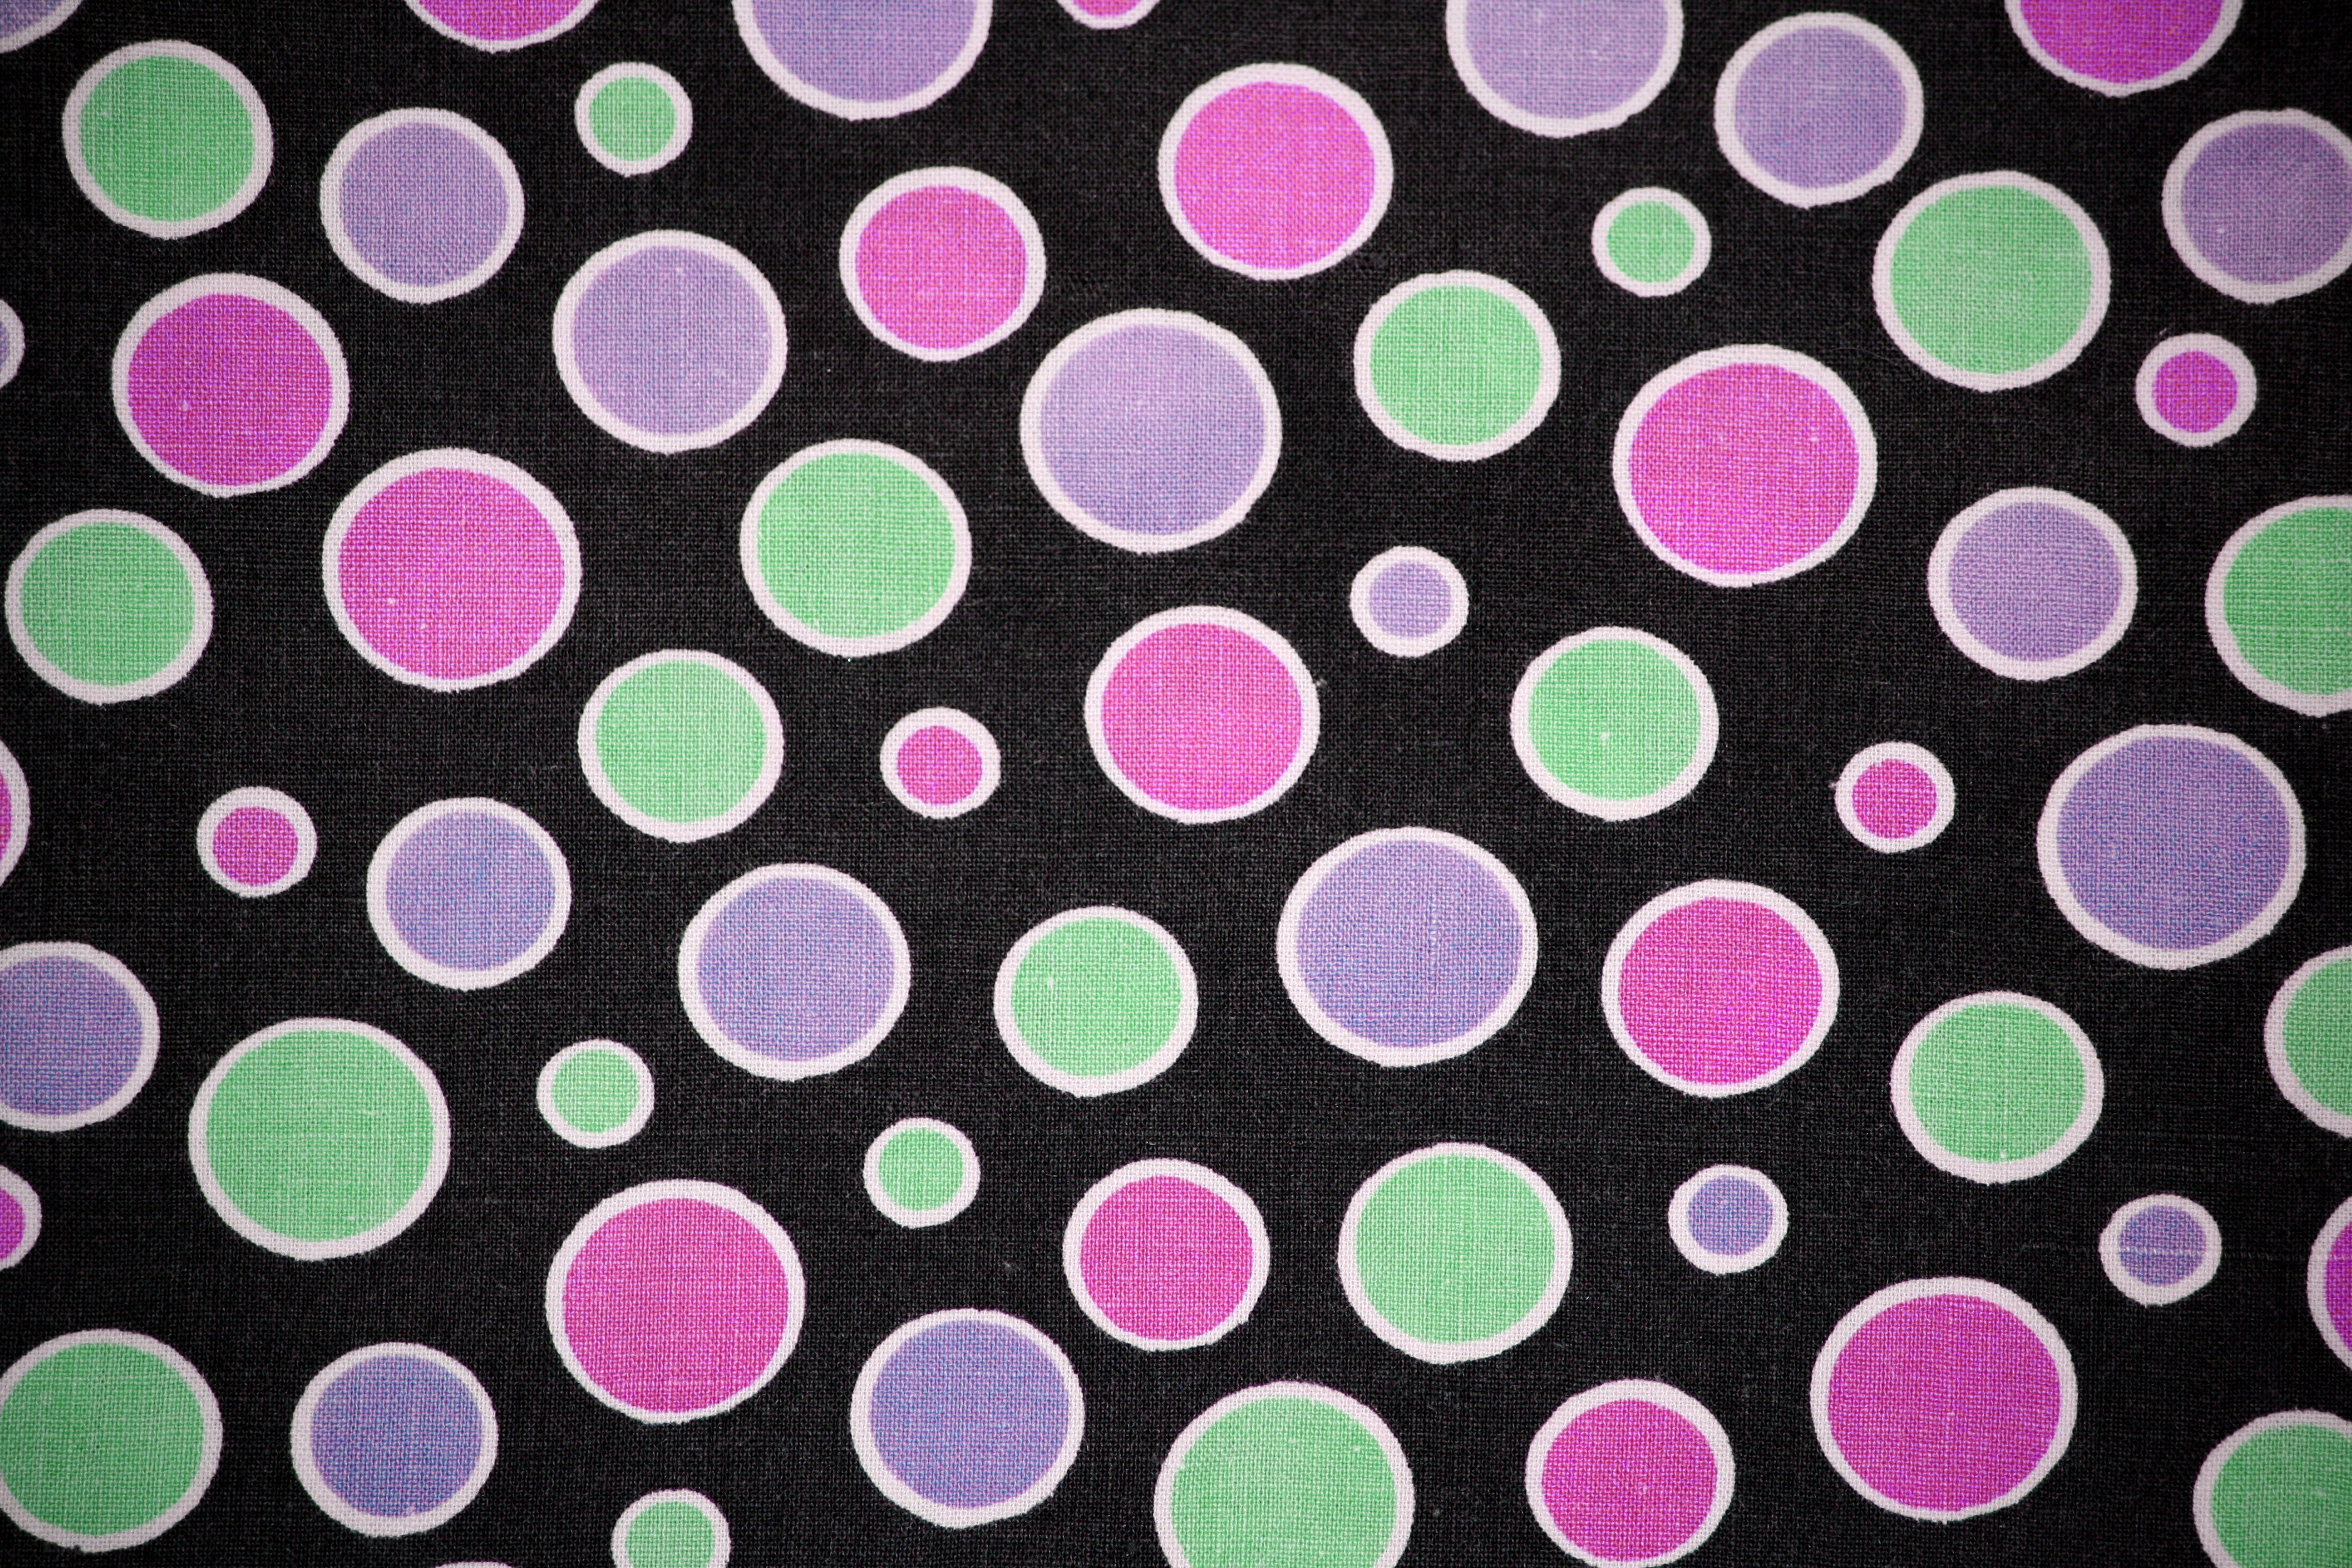 Black Fabric with Pink, Green and Purple Dots Texture Picture ...